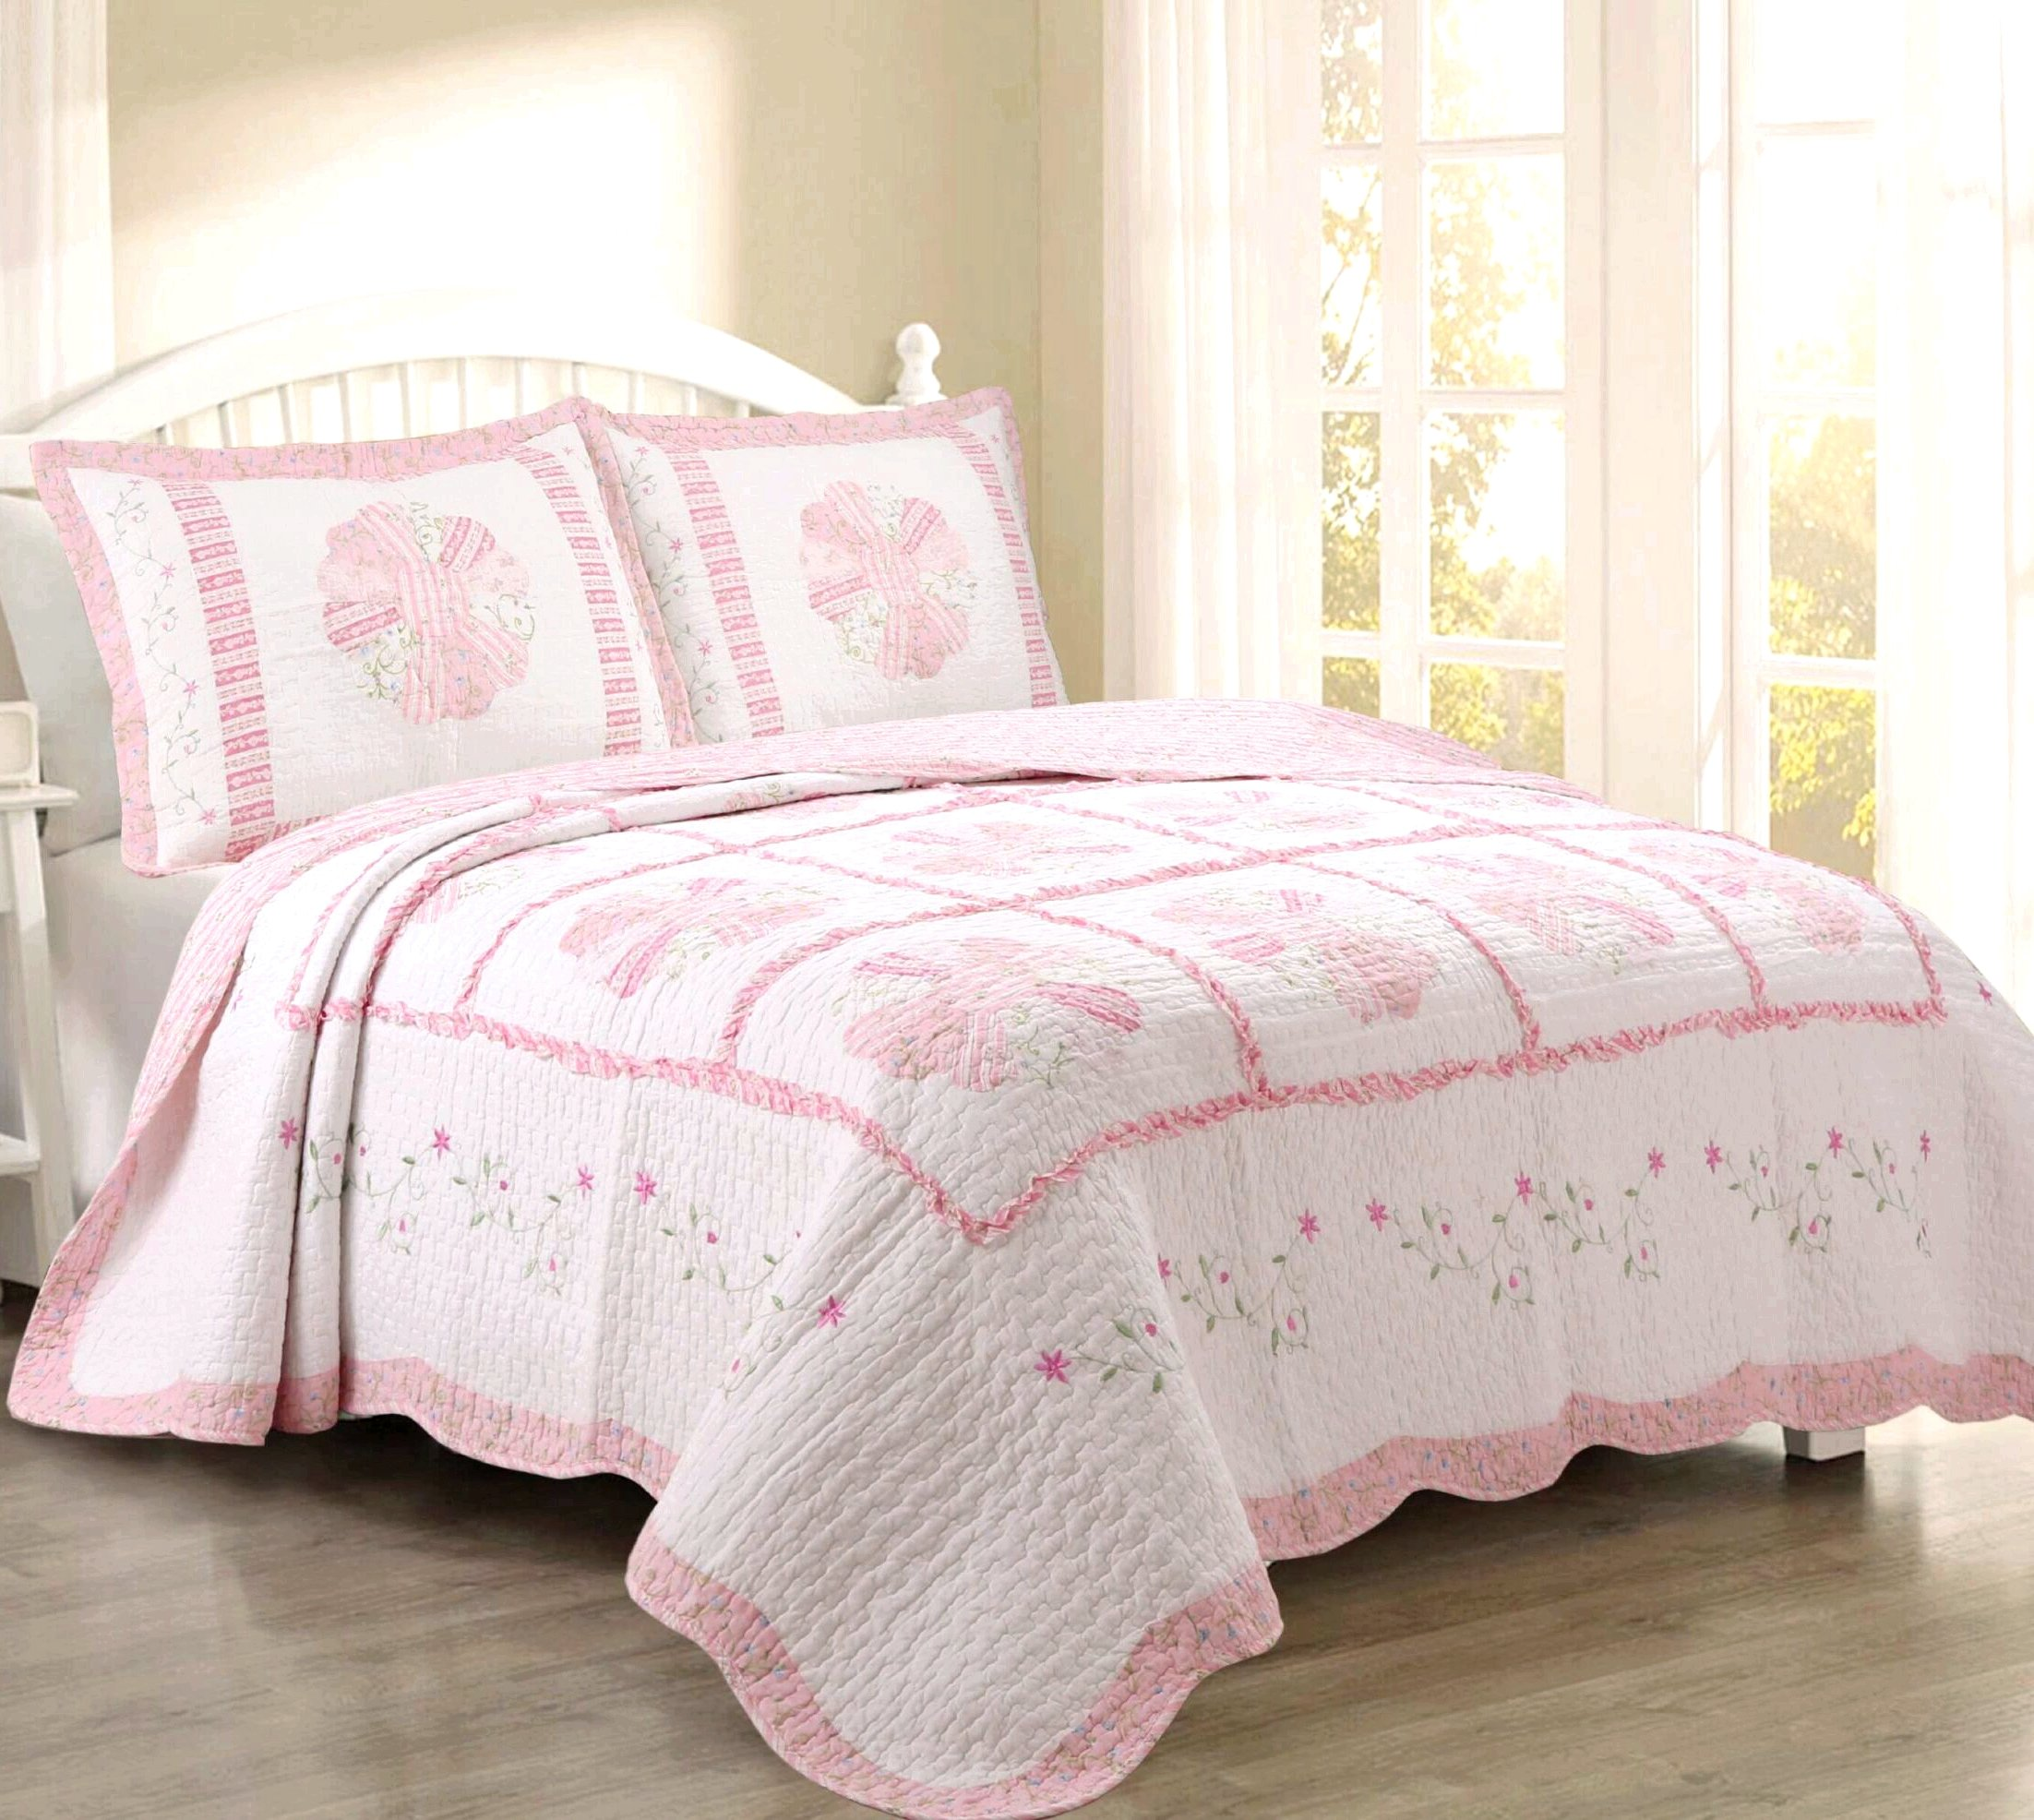 Cozy Line Home Fashions Daisy Field Bedding Quilt Set, Pink White Flower Floral Embroidered Print Pattern 100% COTTON Reversible Coverlet Bedspread Set, Gifts for Women (King Set- 3-piece)